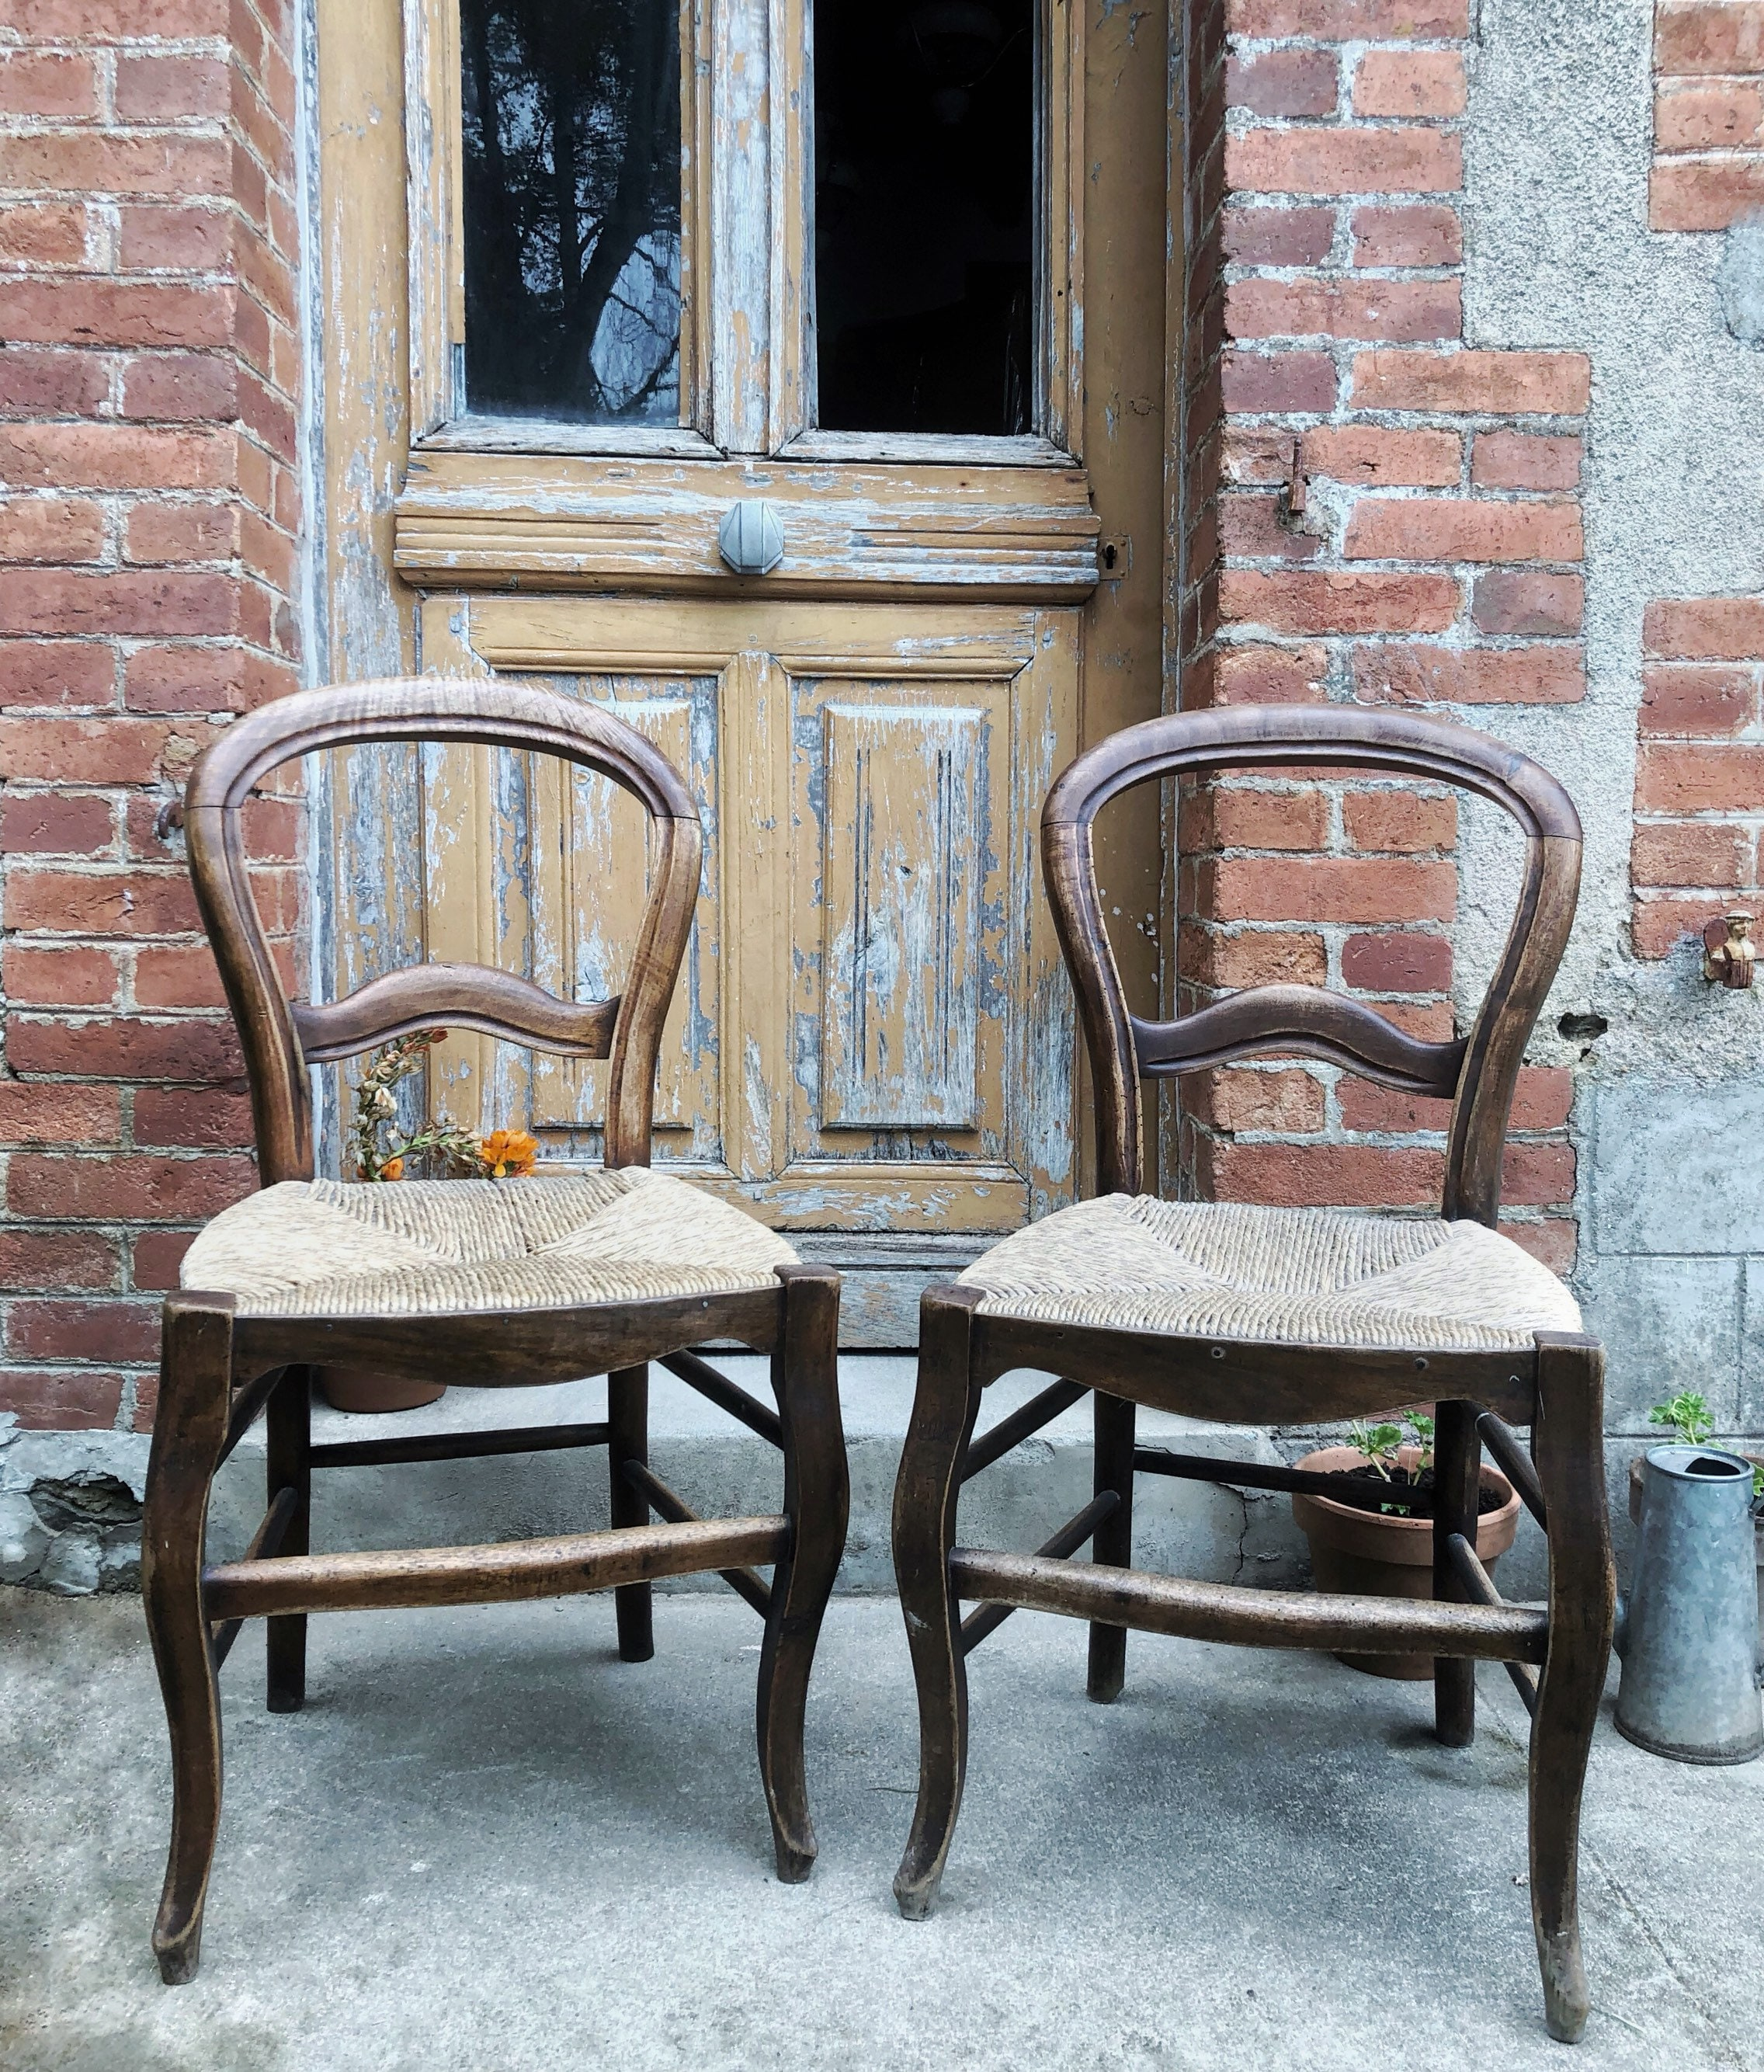 French Kitchen Chairs: Vintage French Rustic Chairs / Vintage Kitchen Chair